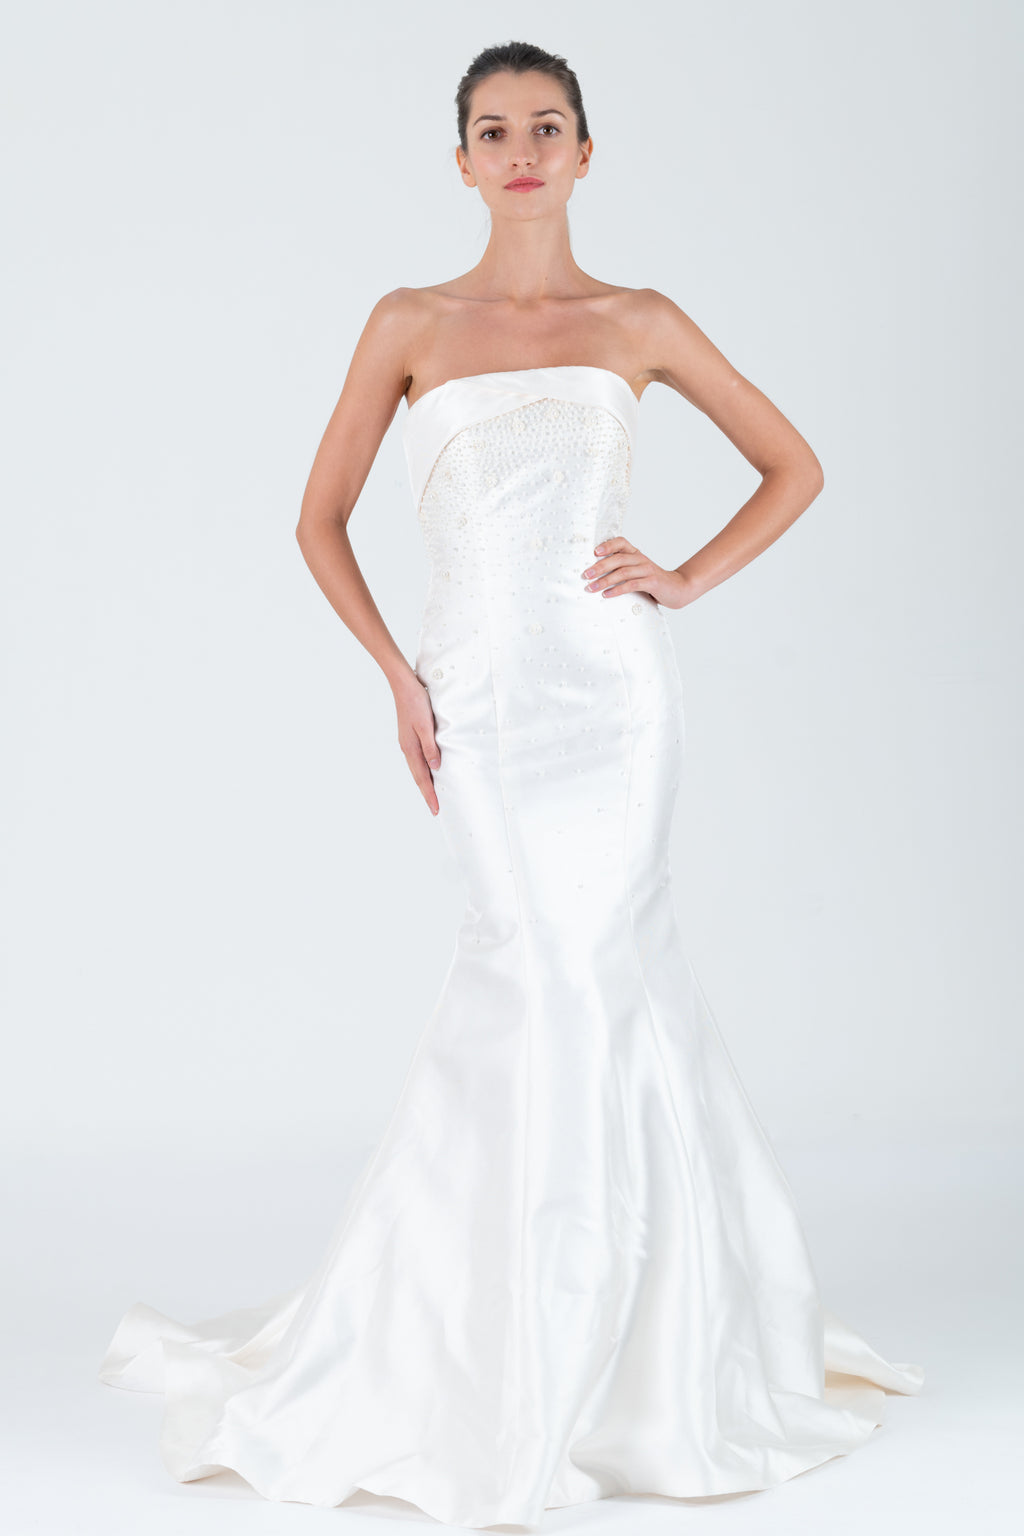 Qipology White Strapless Cuffed Embellished Trumpet Wedding Gown